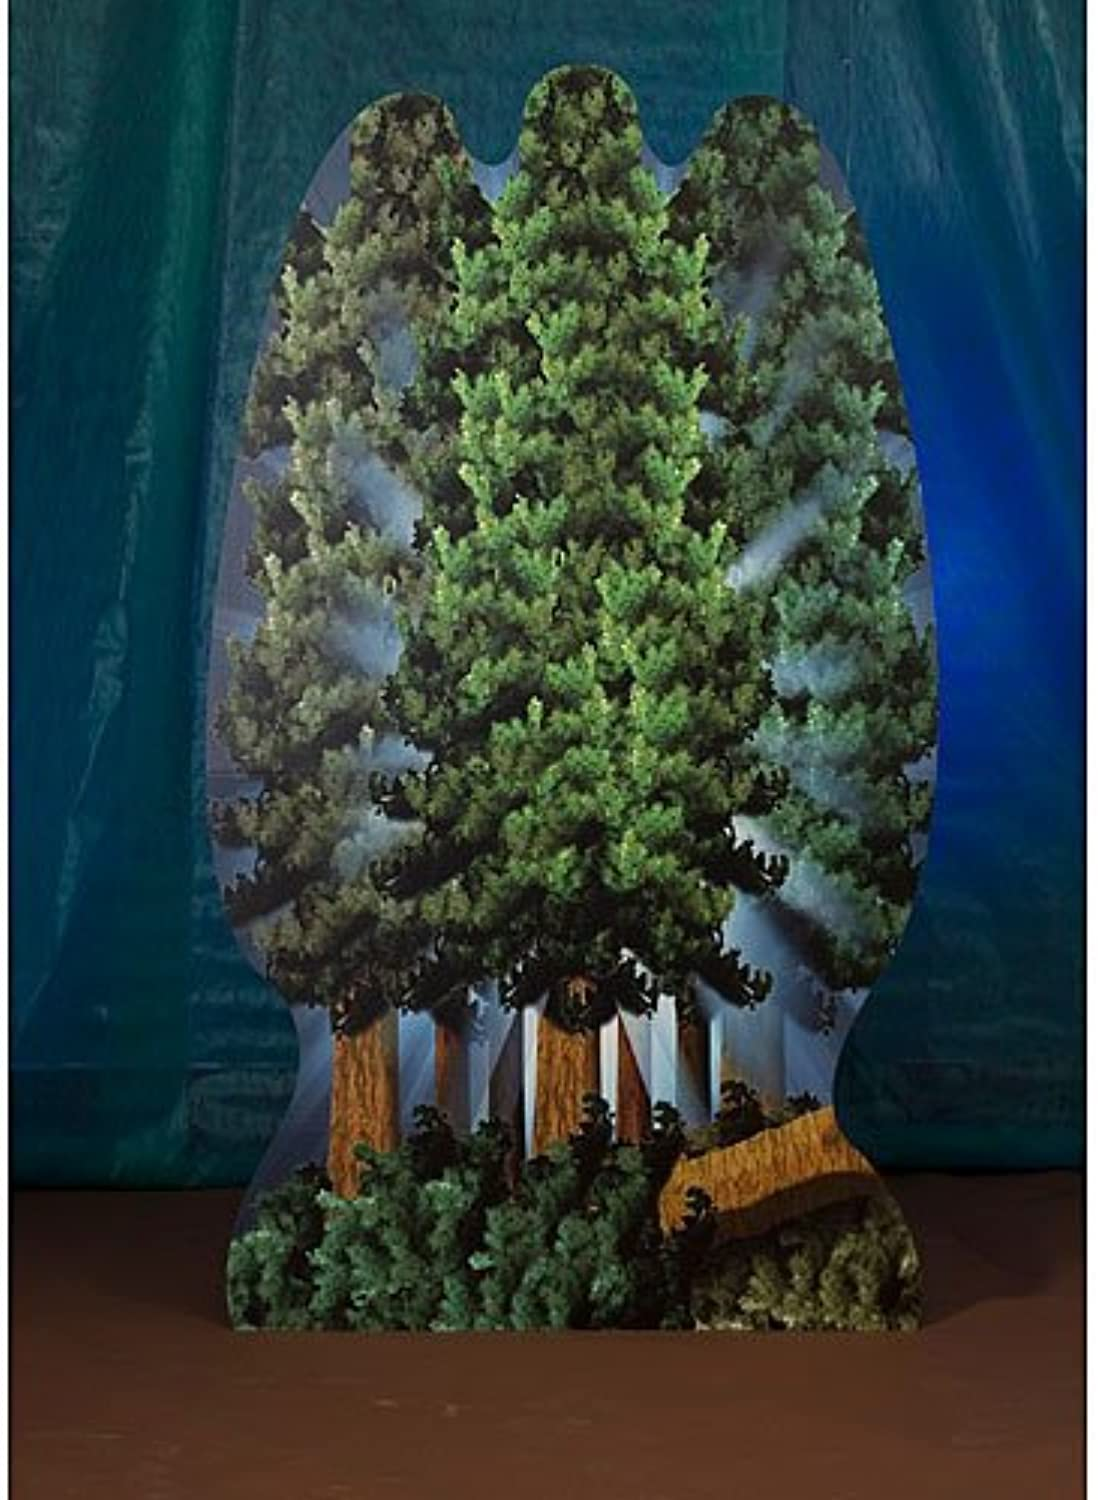 Tree Standee Party Prop Decoration by Shindigz